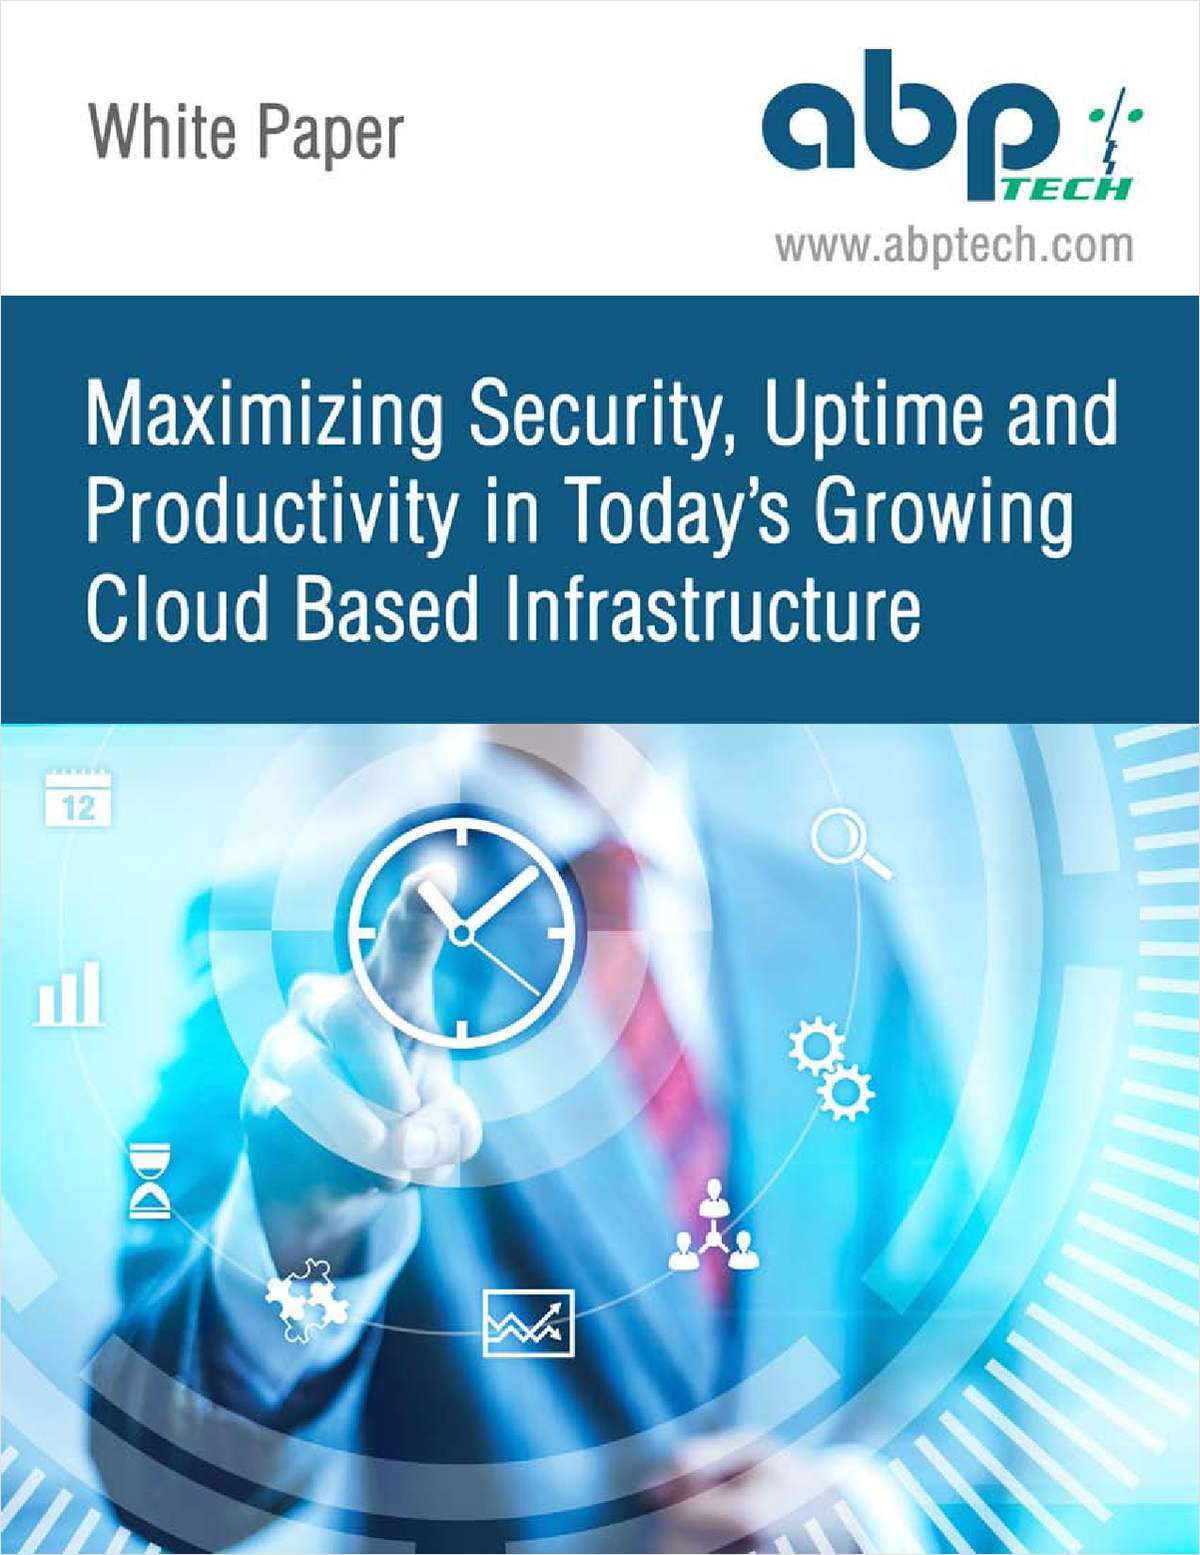 Maximizing Security, Uptime and Productivity in Today's Growing Cloud Based Infrastructure